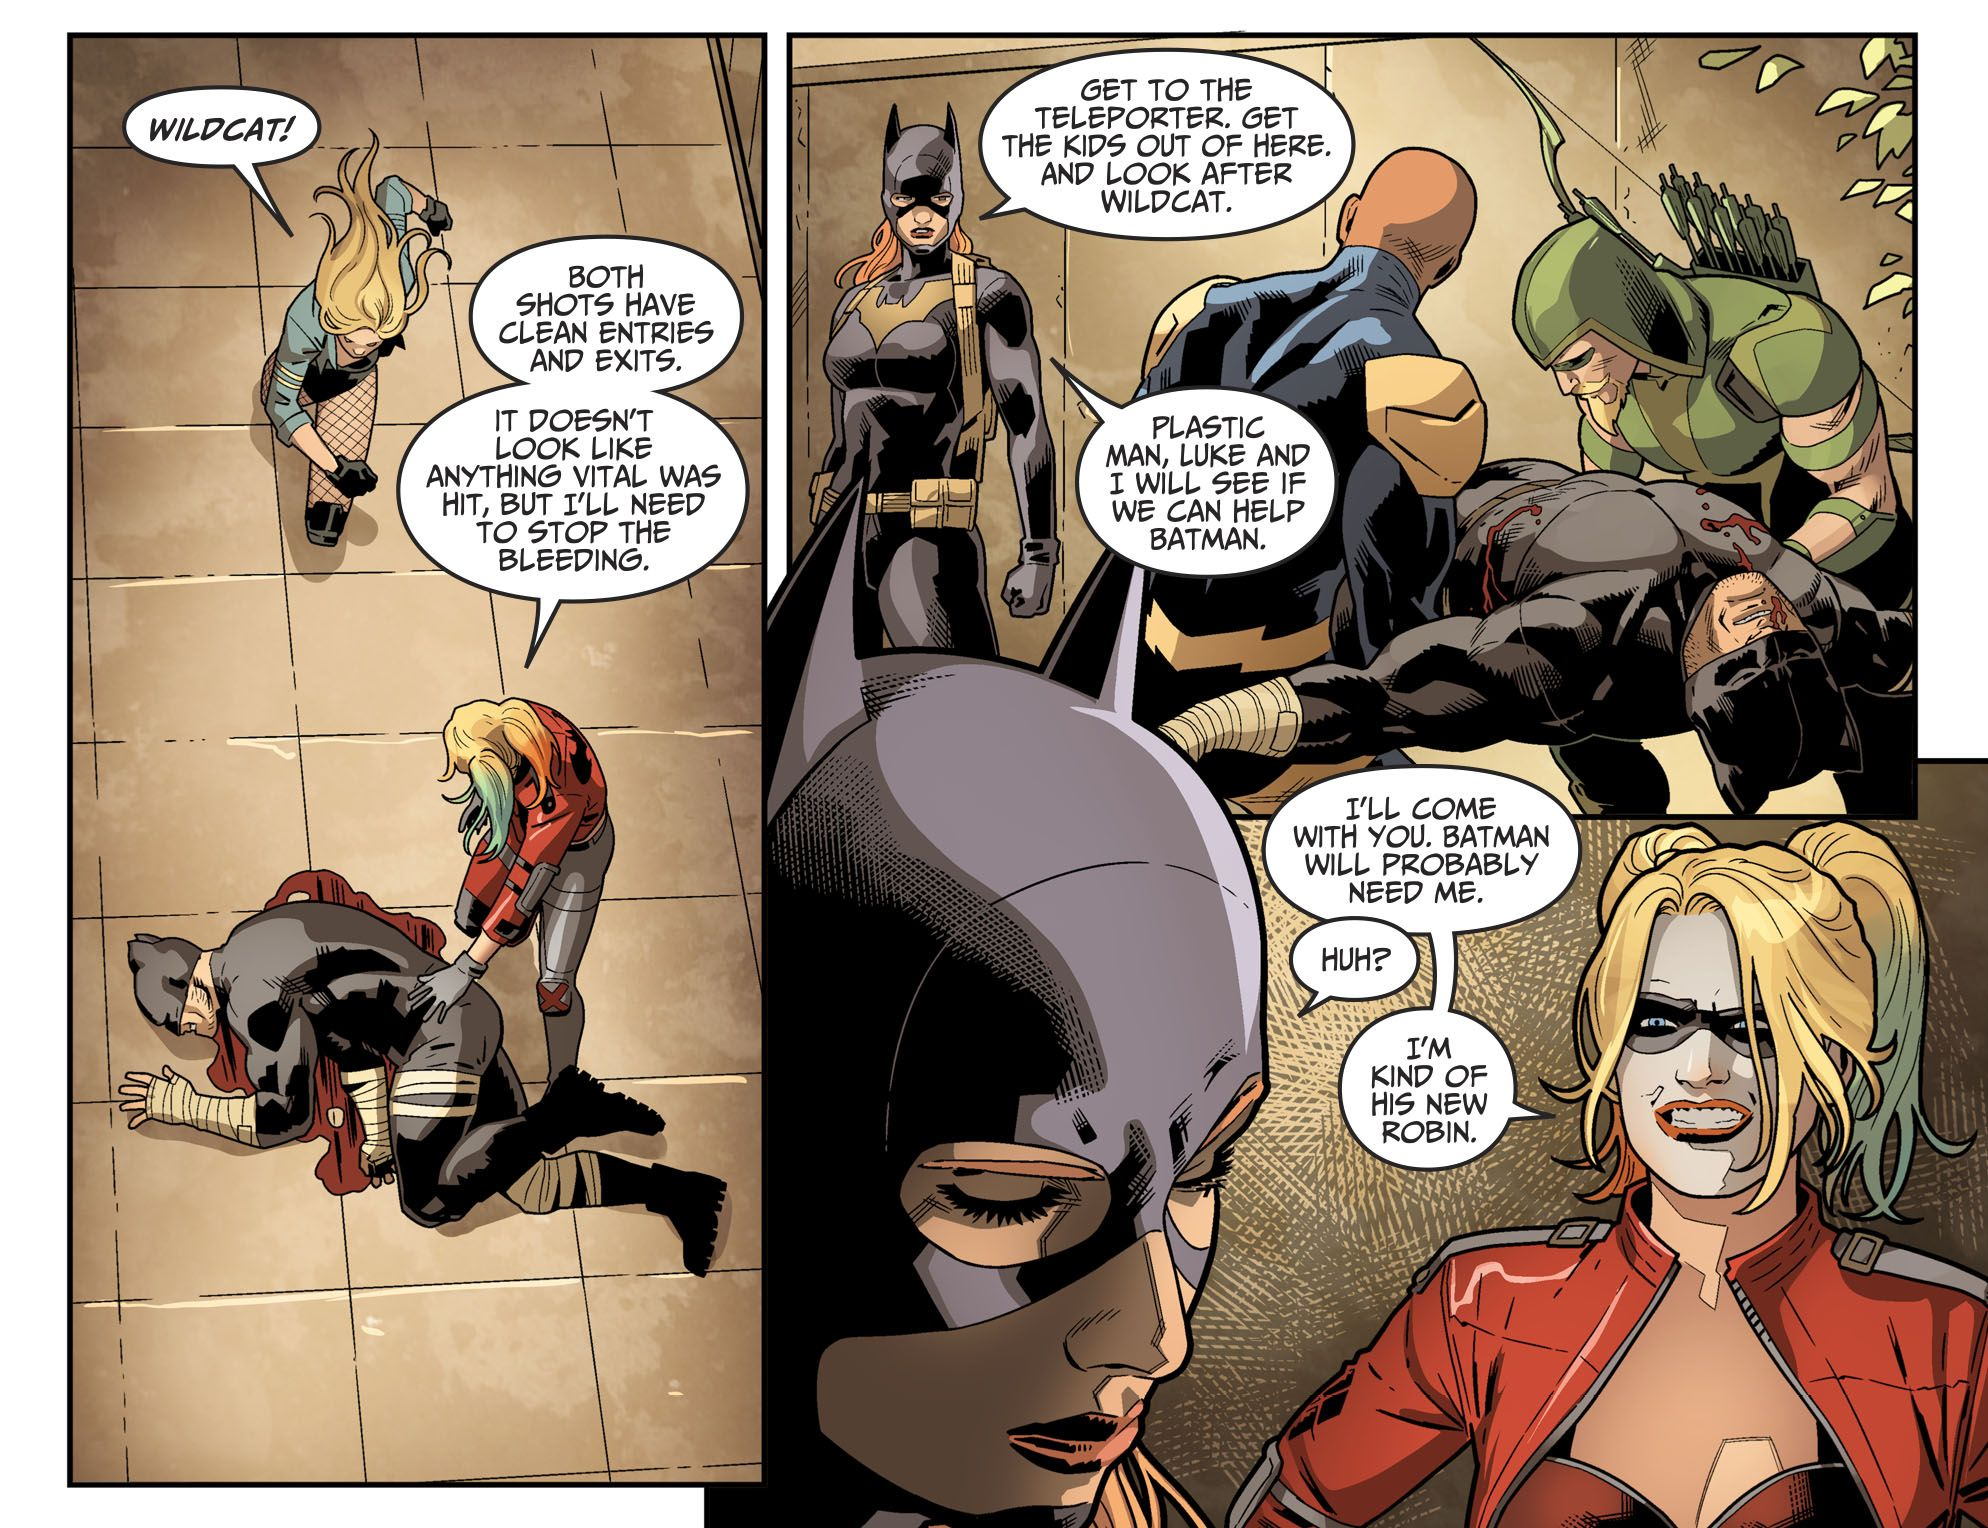 Injustice 2 Issue 21 Read Injustice 2 Issue 21 Comic Online In High Quality Injustice Batman Injustice 2